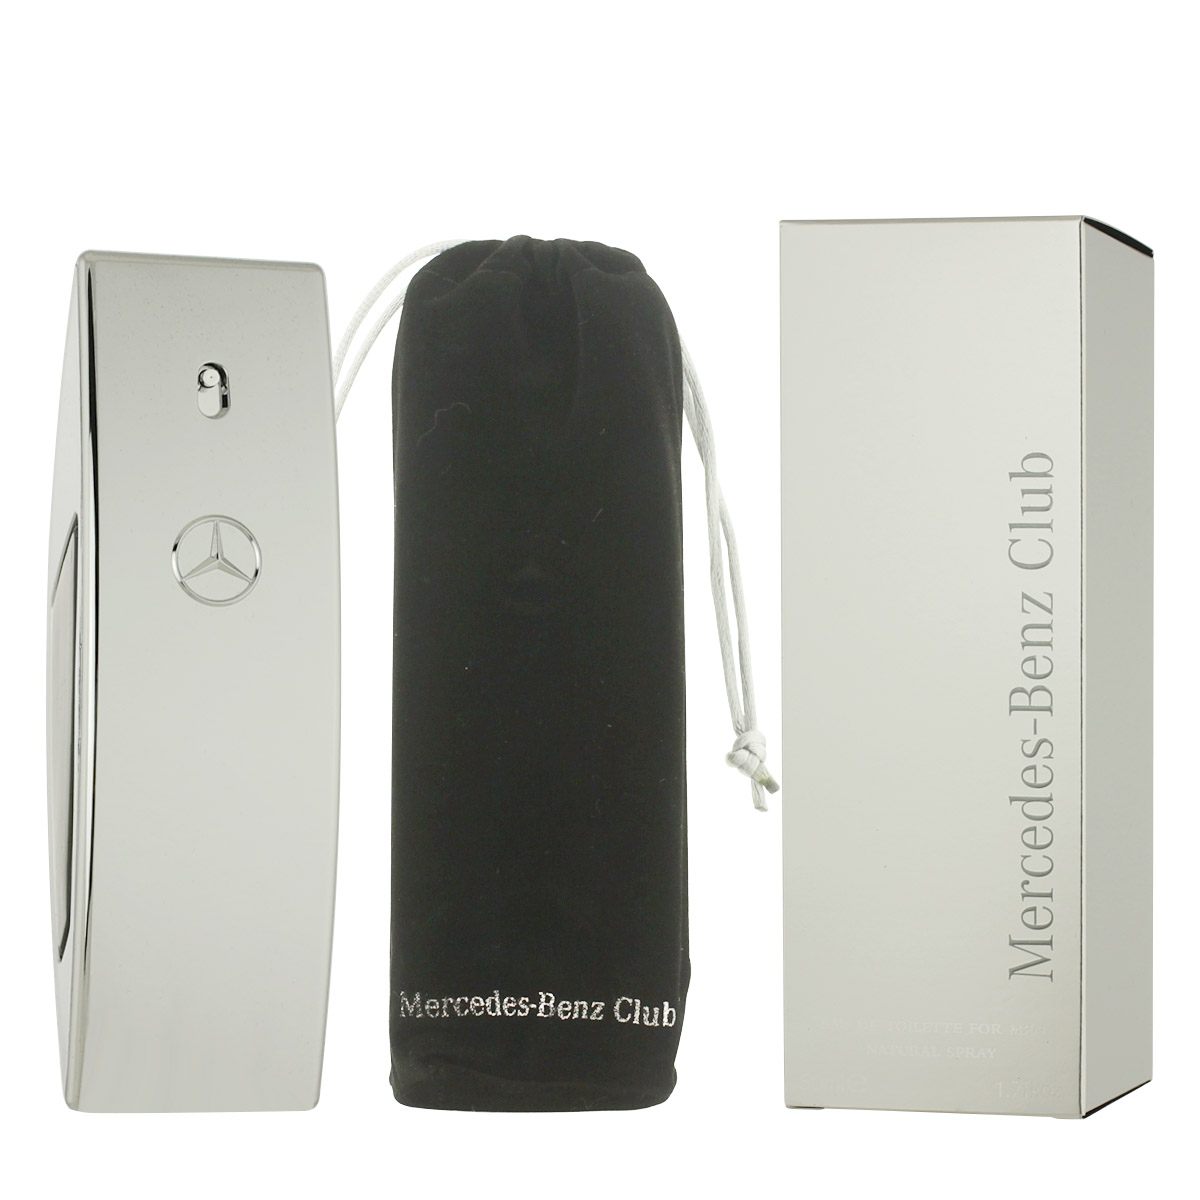 Mercedes-Benz Mercedes-Benz Club EDT 50 ml M